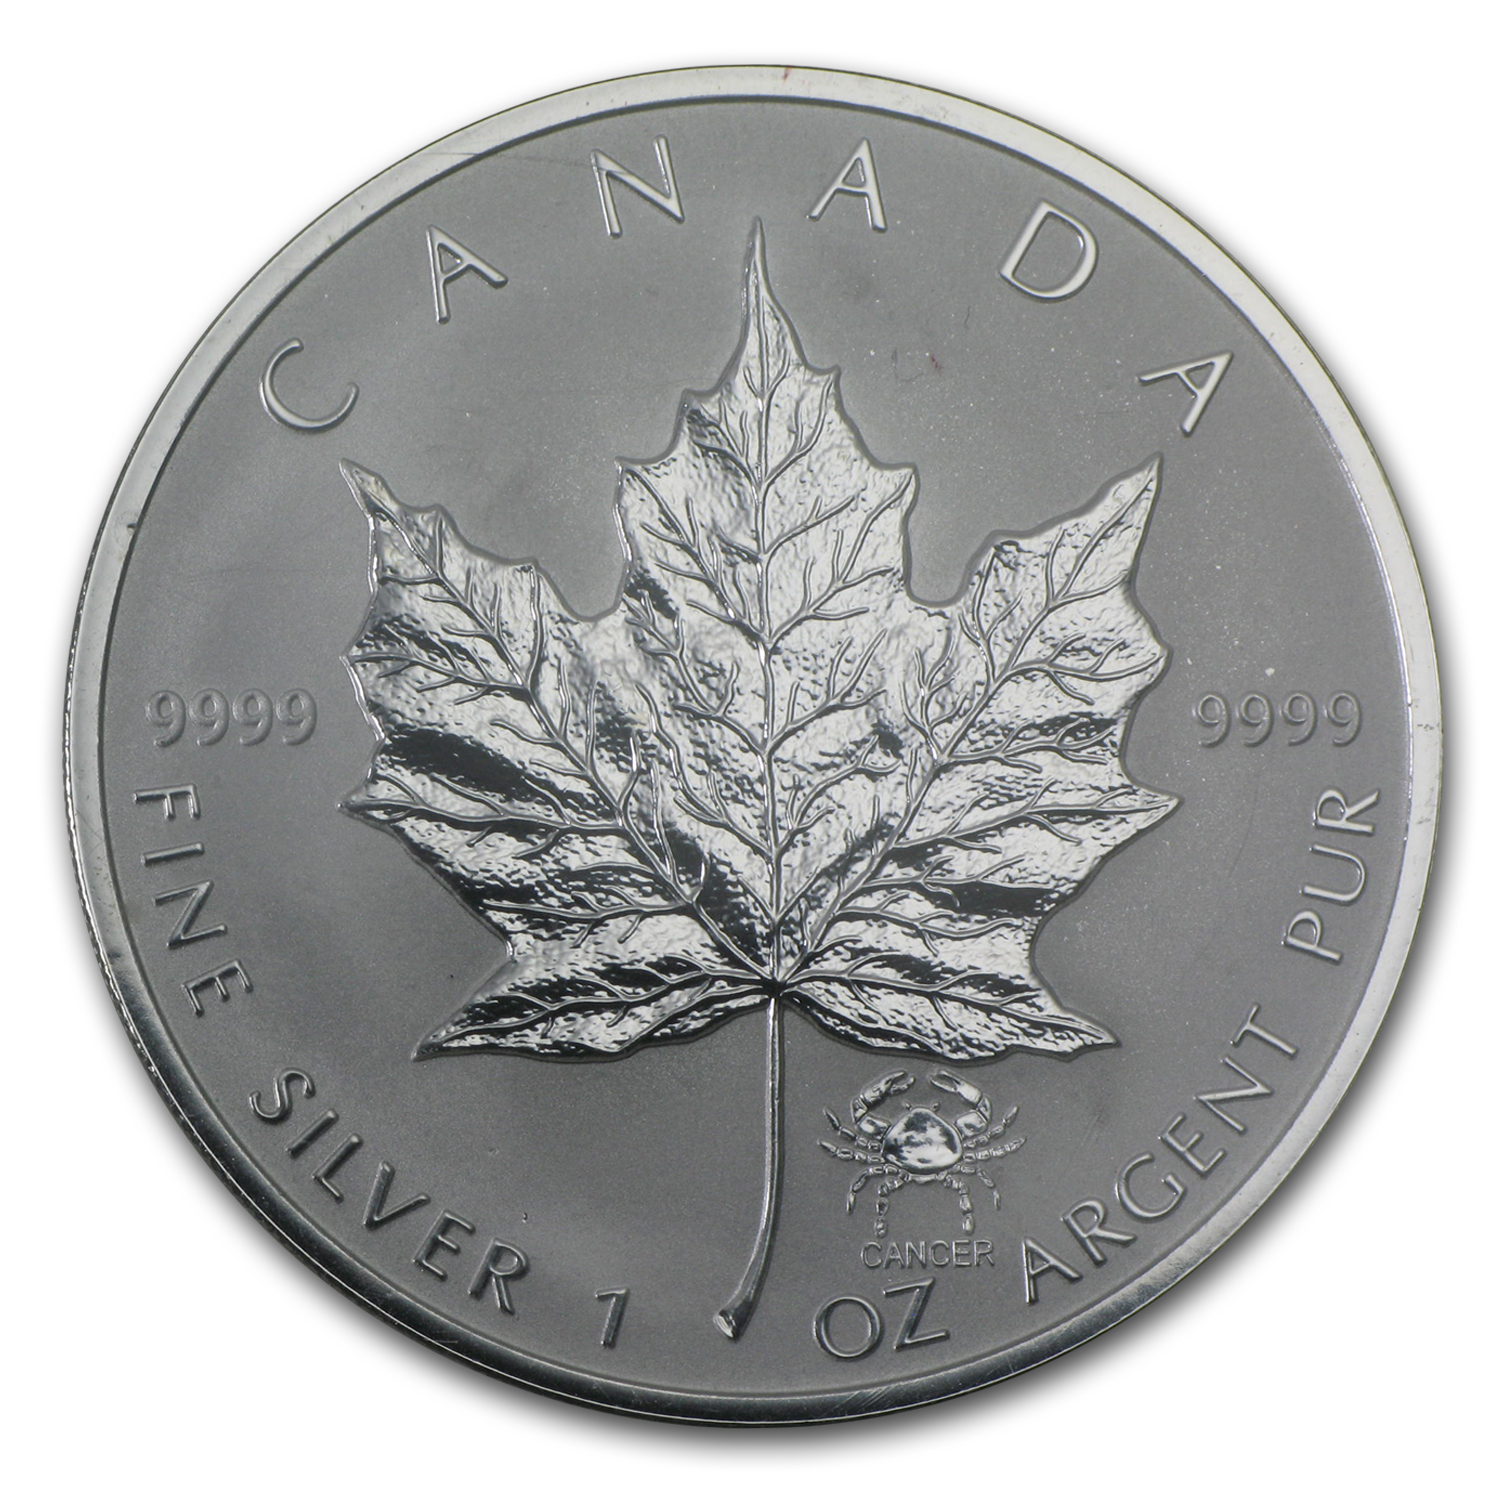 2004 Canada 1 oz Silver Maple Leaf Cancer Zodiac Privy